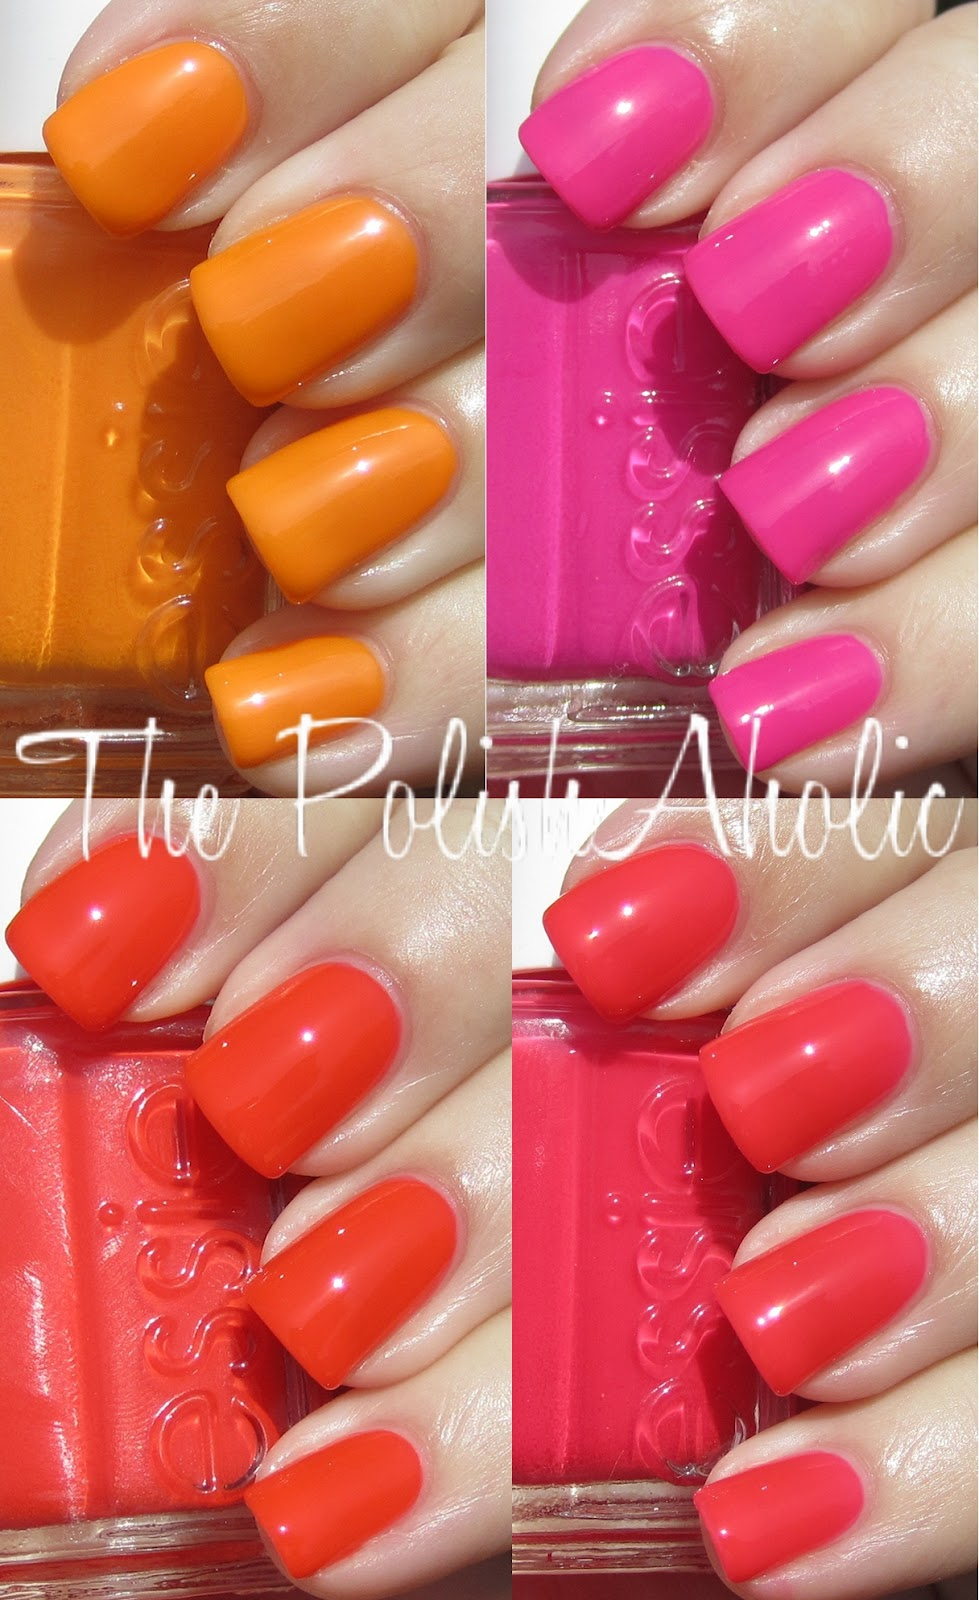 The PolishAholic: Essie Summer 2012 Poppy-Razzi Collection Swatches!